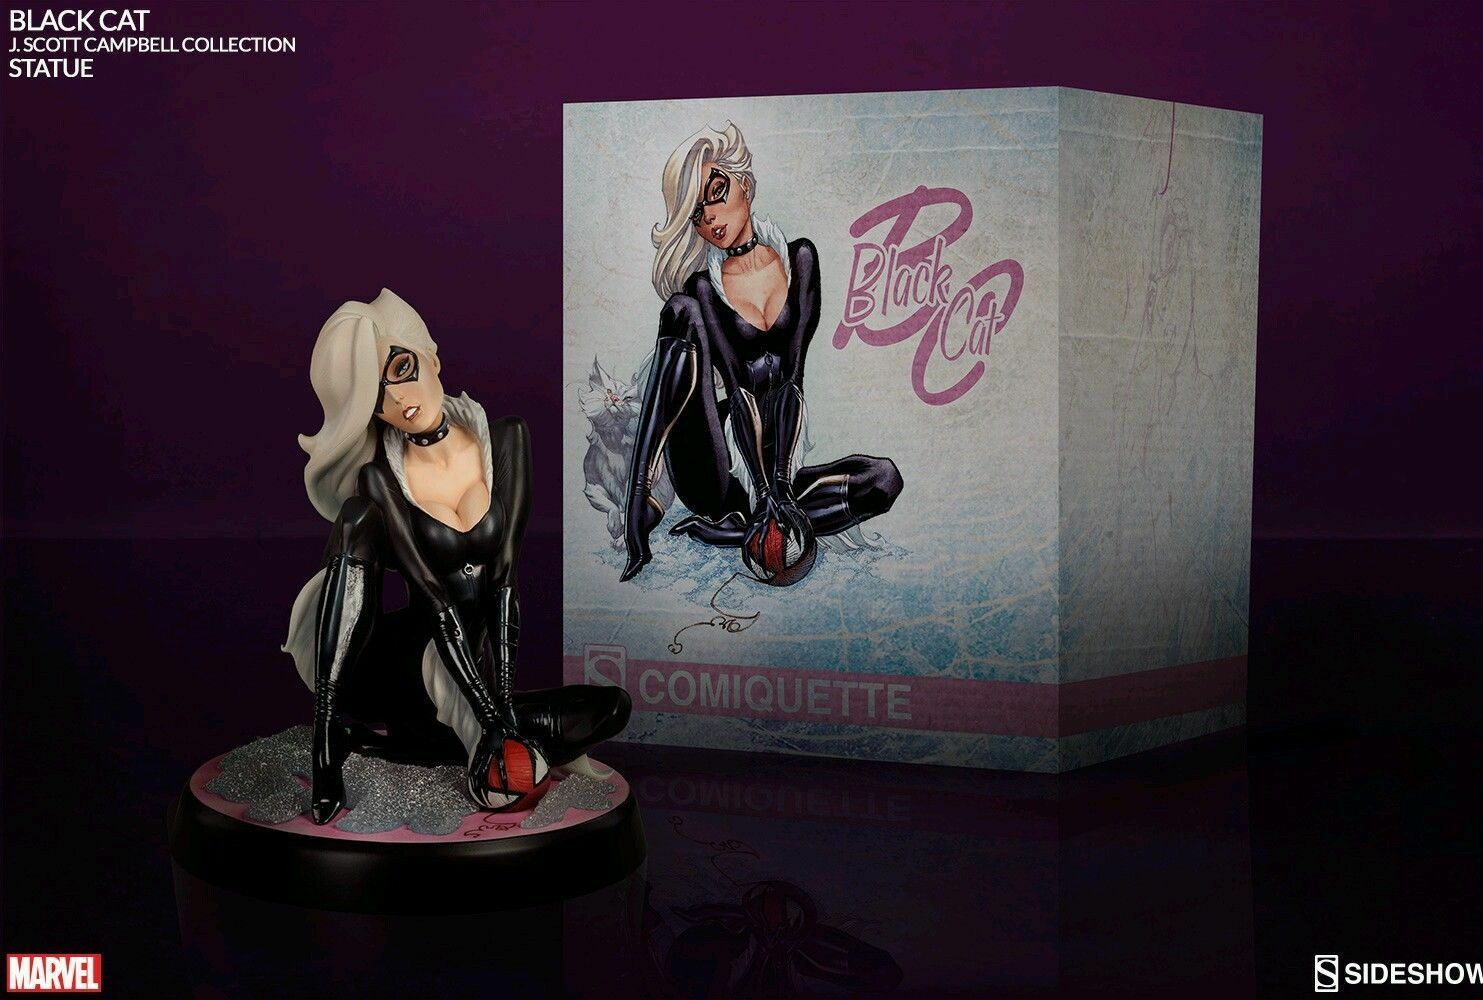 Sideshow Negro CAT Spider-man COMIQUETTE Statue CAMPBELL Spiderman new SALE